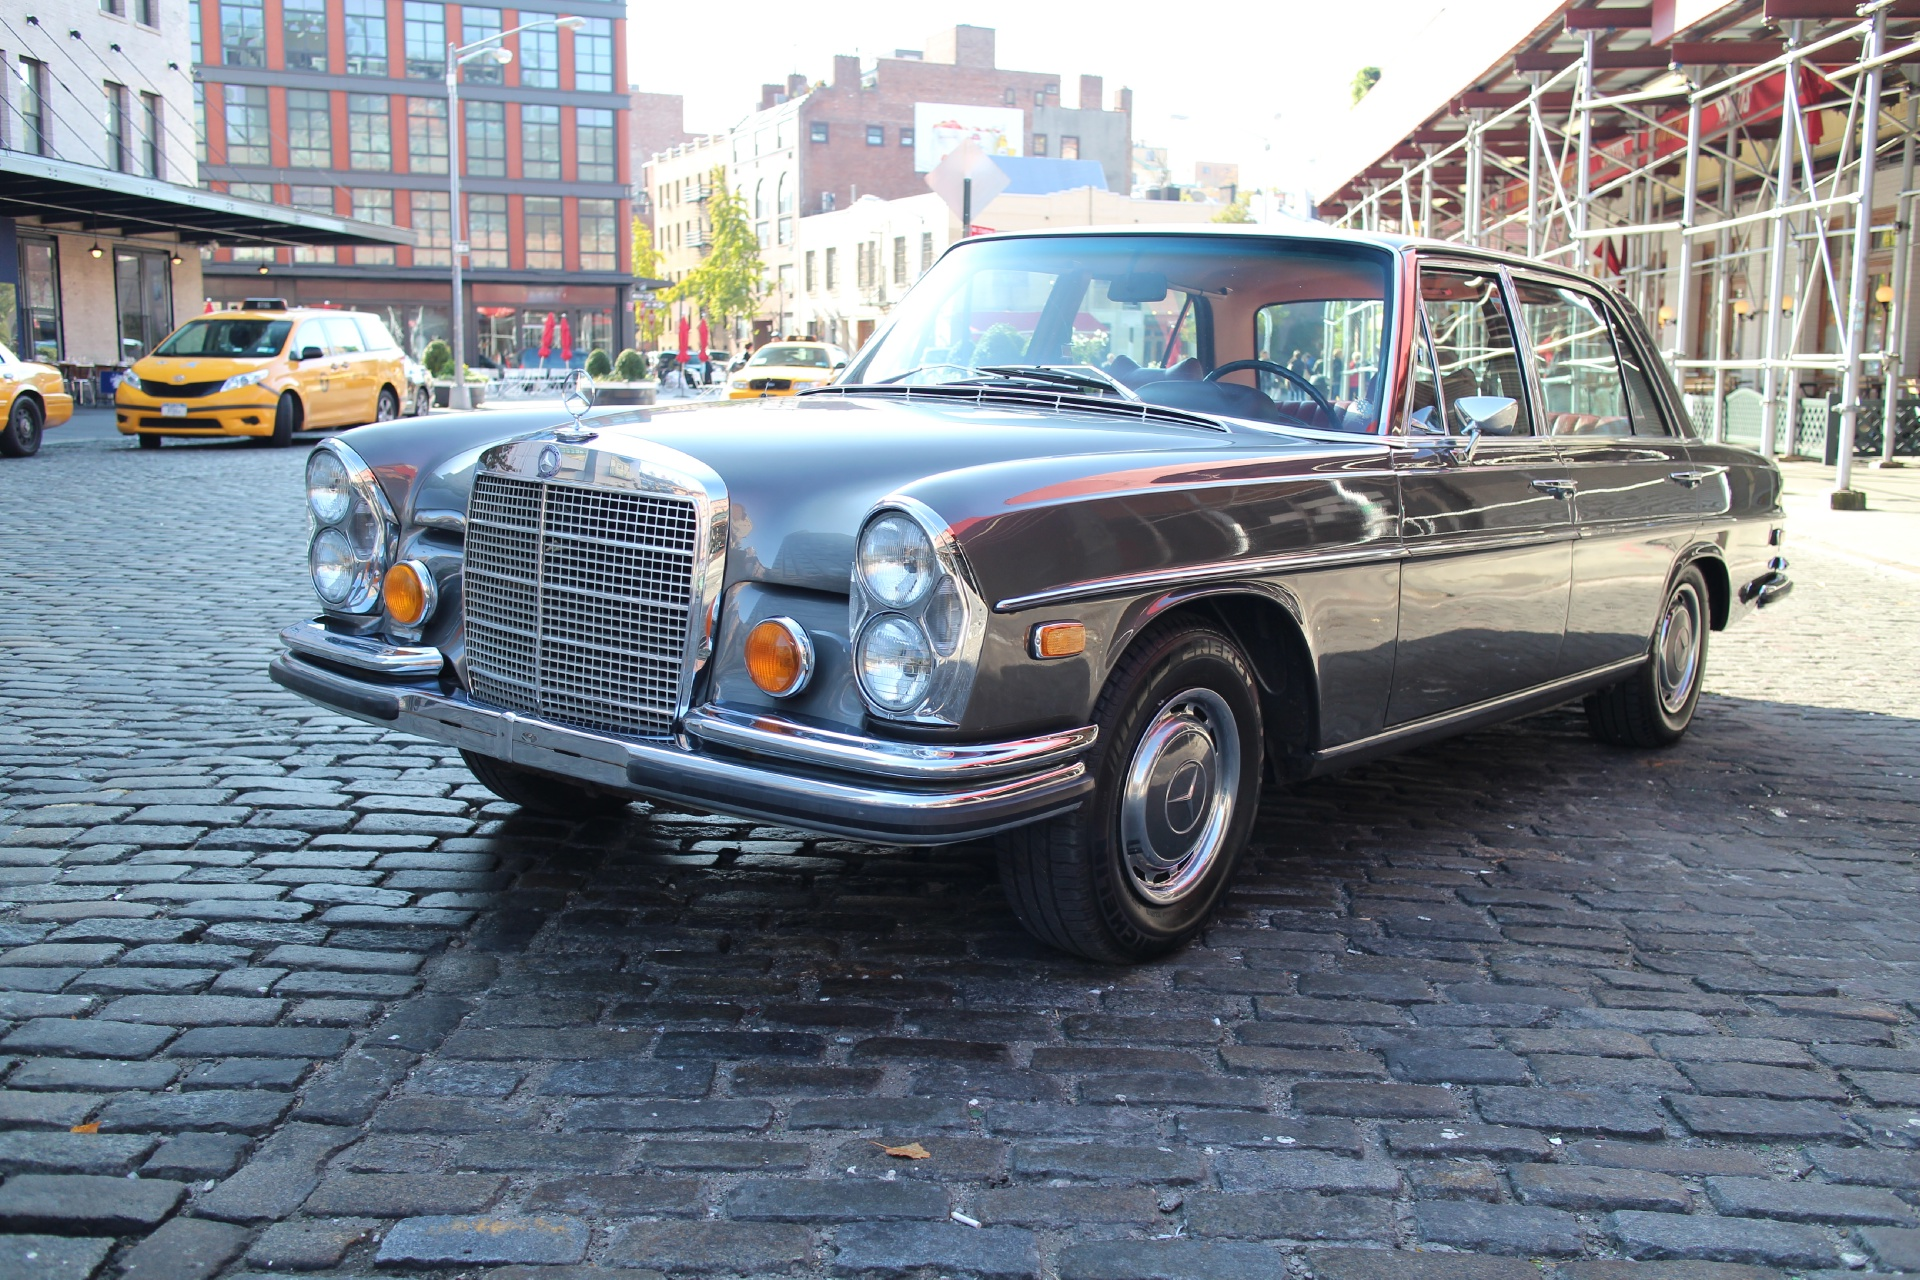 1970 Mercedes-Benz 300SEL Stock # 663 For Sale Near New